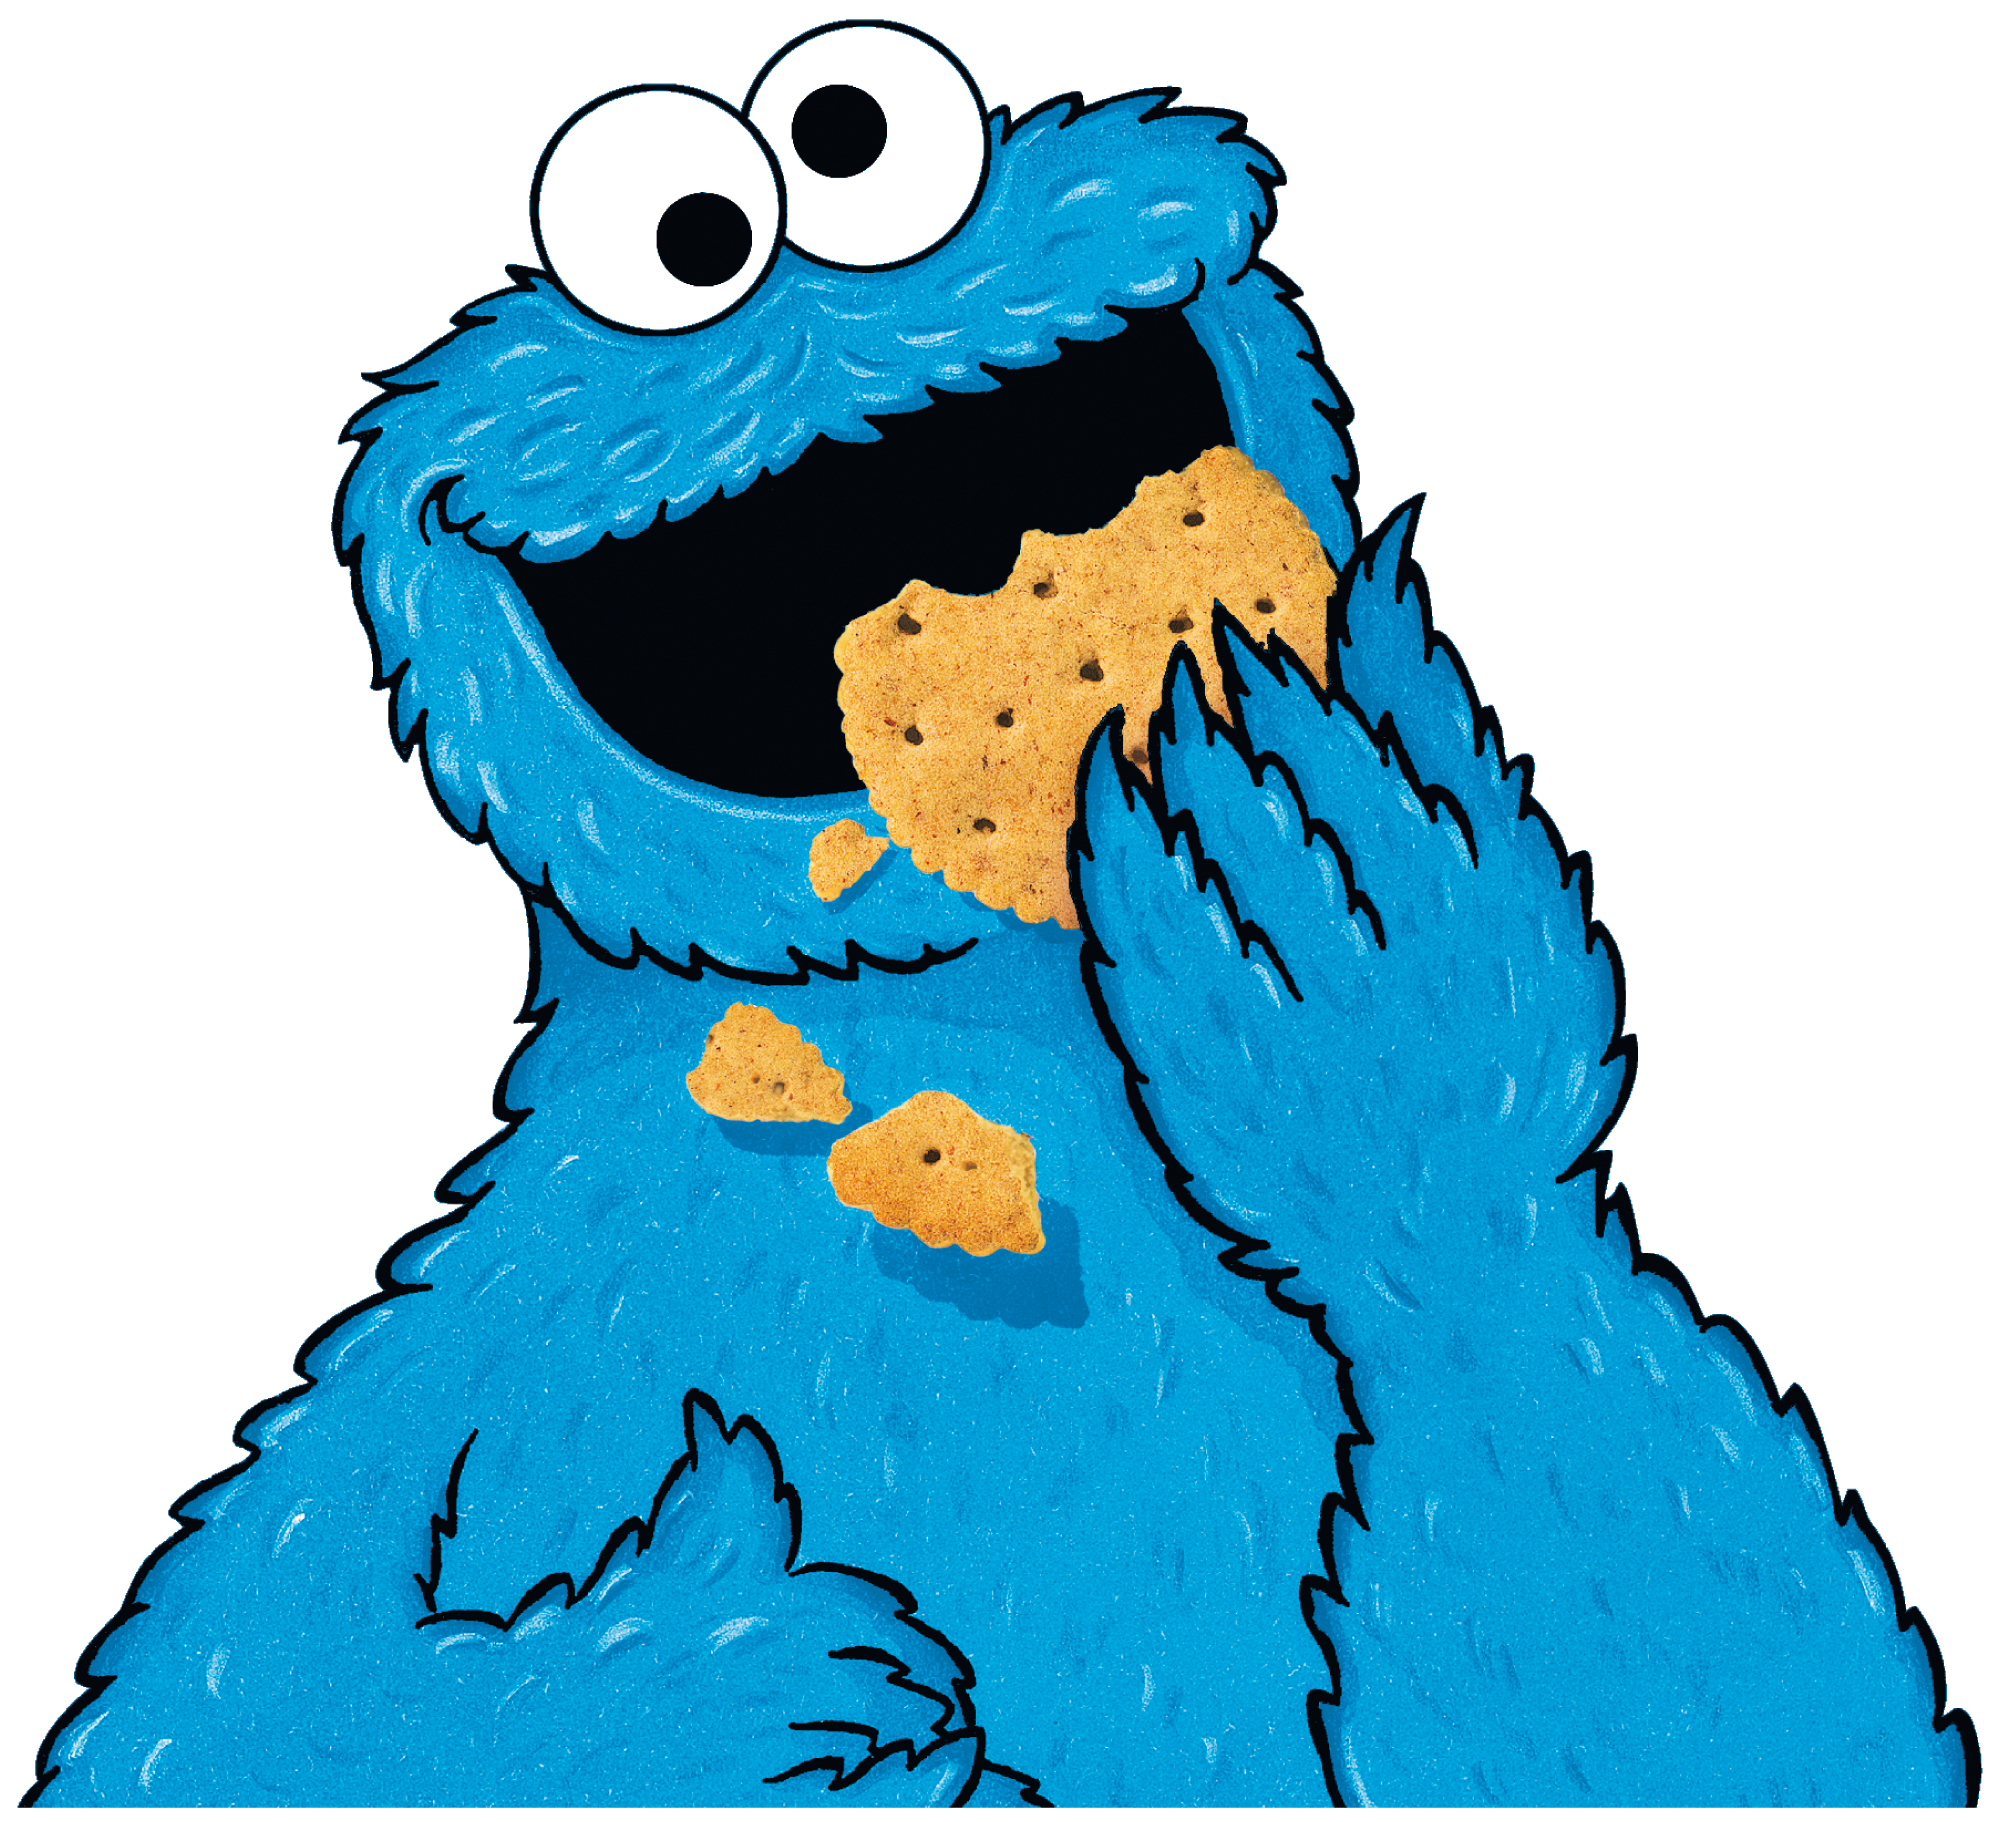 2000x1822 Cookie Monster Animated Clipart